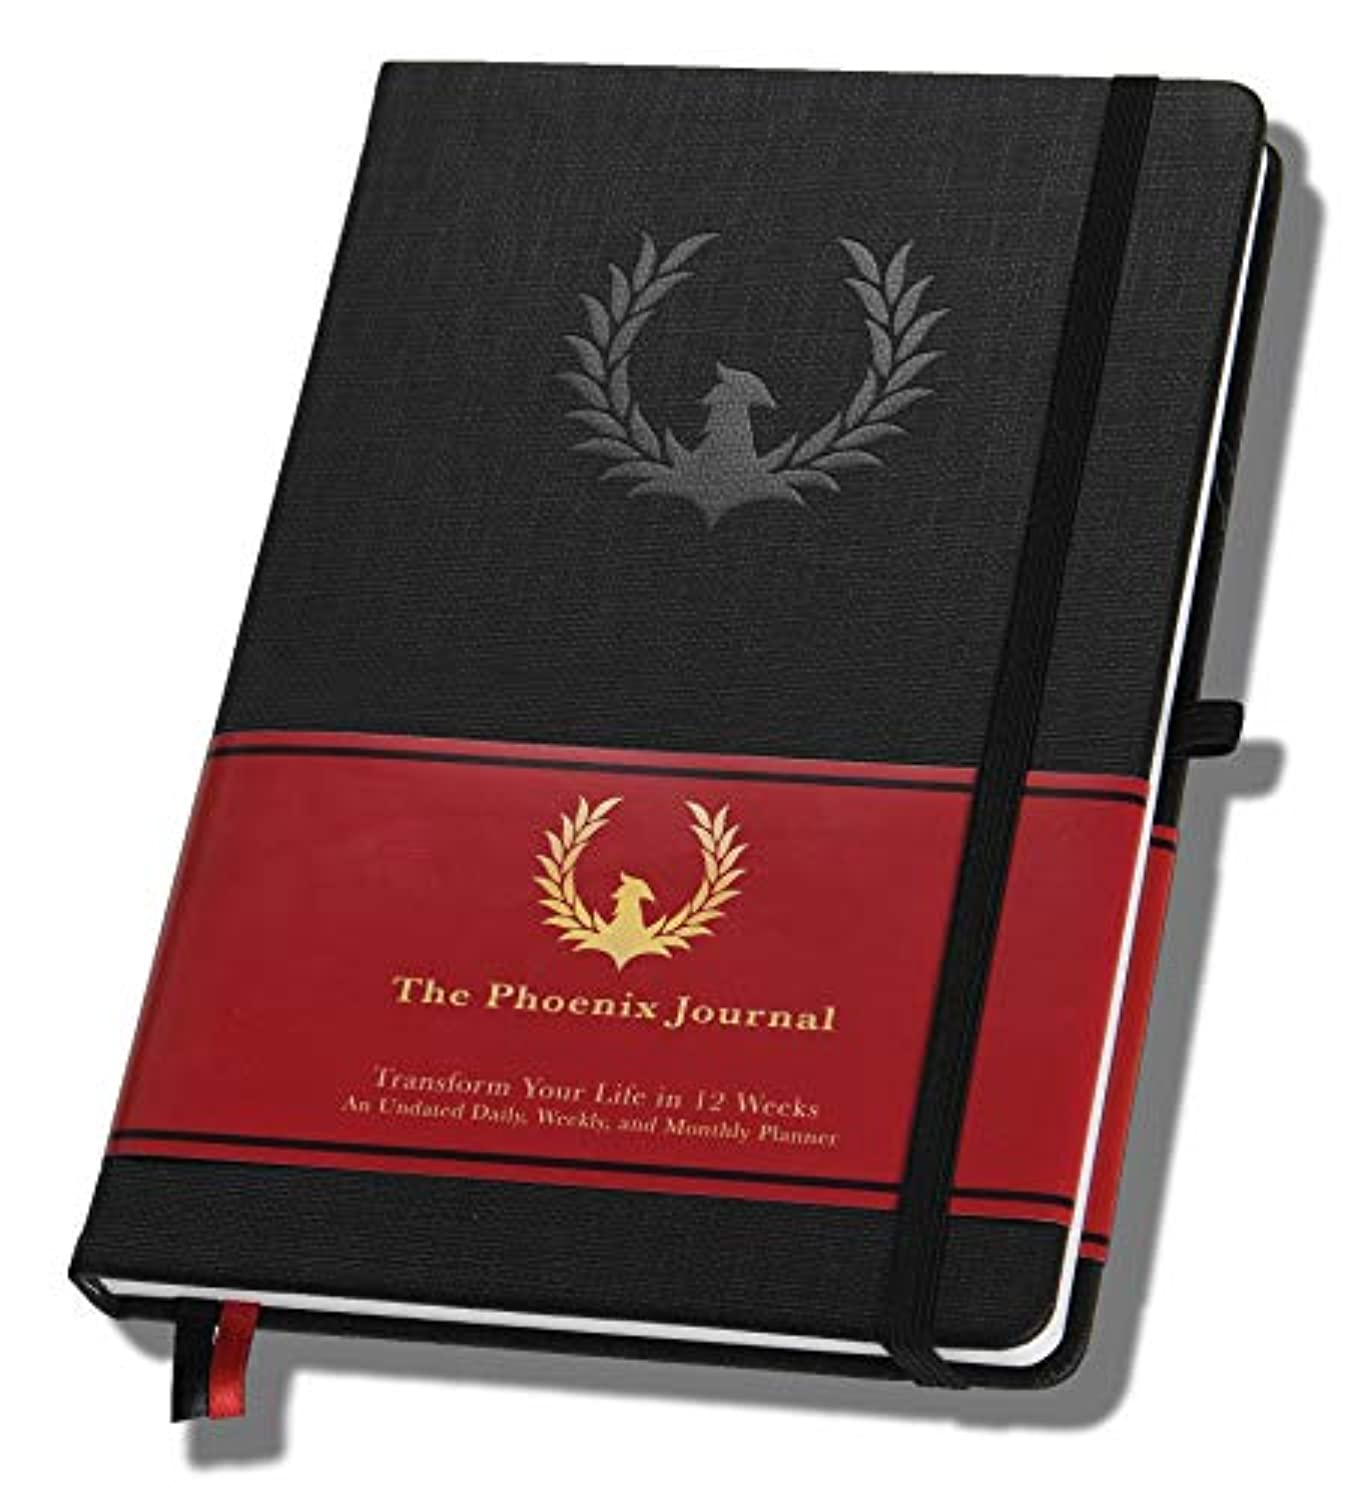 The Phoenix Journal - Best Daily Planner & Calendar for Gratitude, Goal Setting, and Boosting Happiness & Productivity - Transform Your Life - 12 Weeks, Undated, Hardcover - 1 Year Return Guarantee